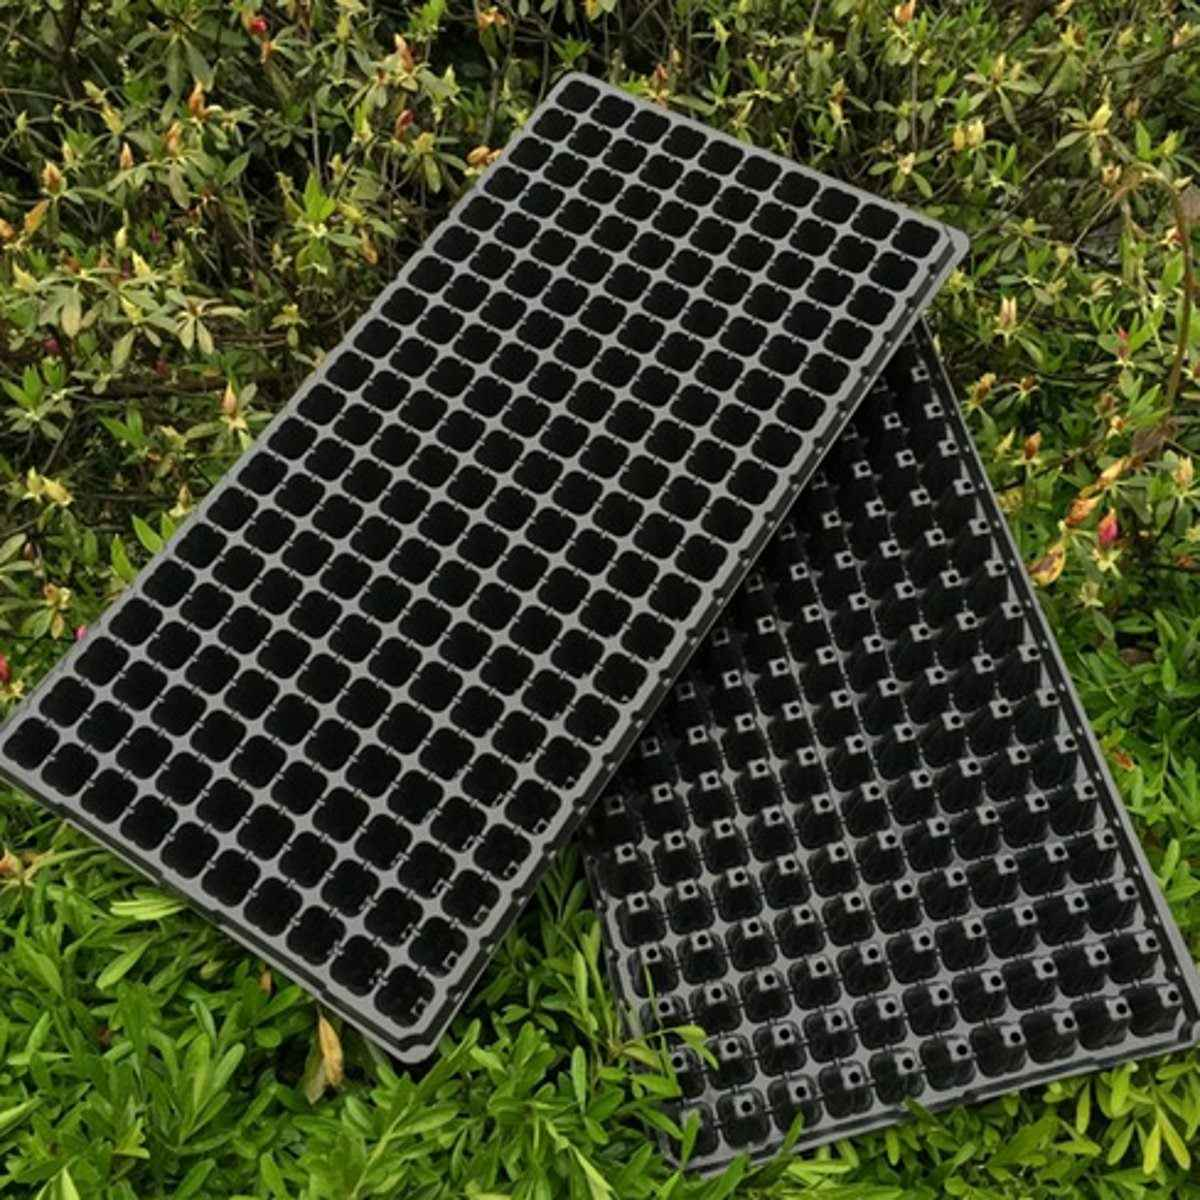 200 Holes Seedling Starter Planting Tray Extra Strength Seed Germination Vegetable Plant Flower Pot Nursery Grow Box Propagation